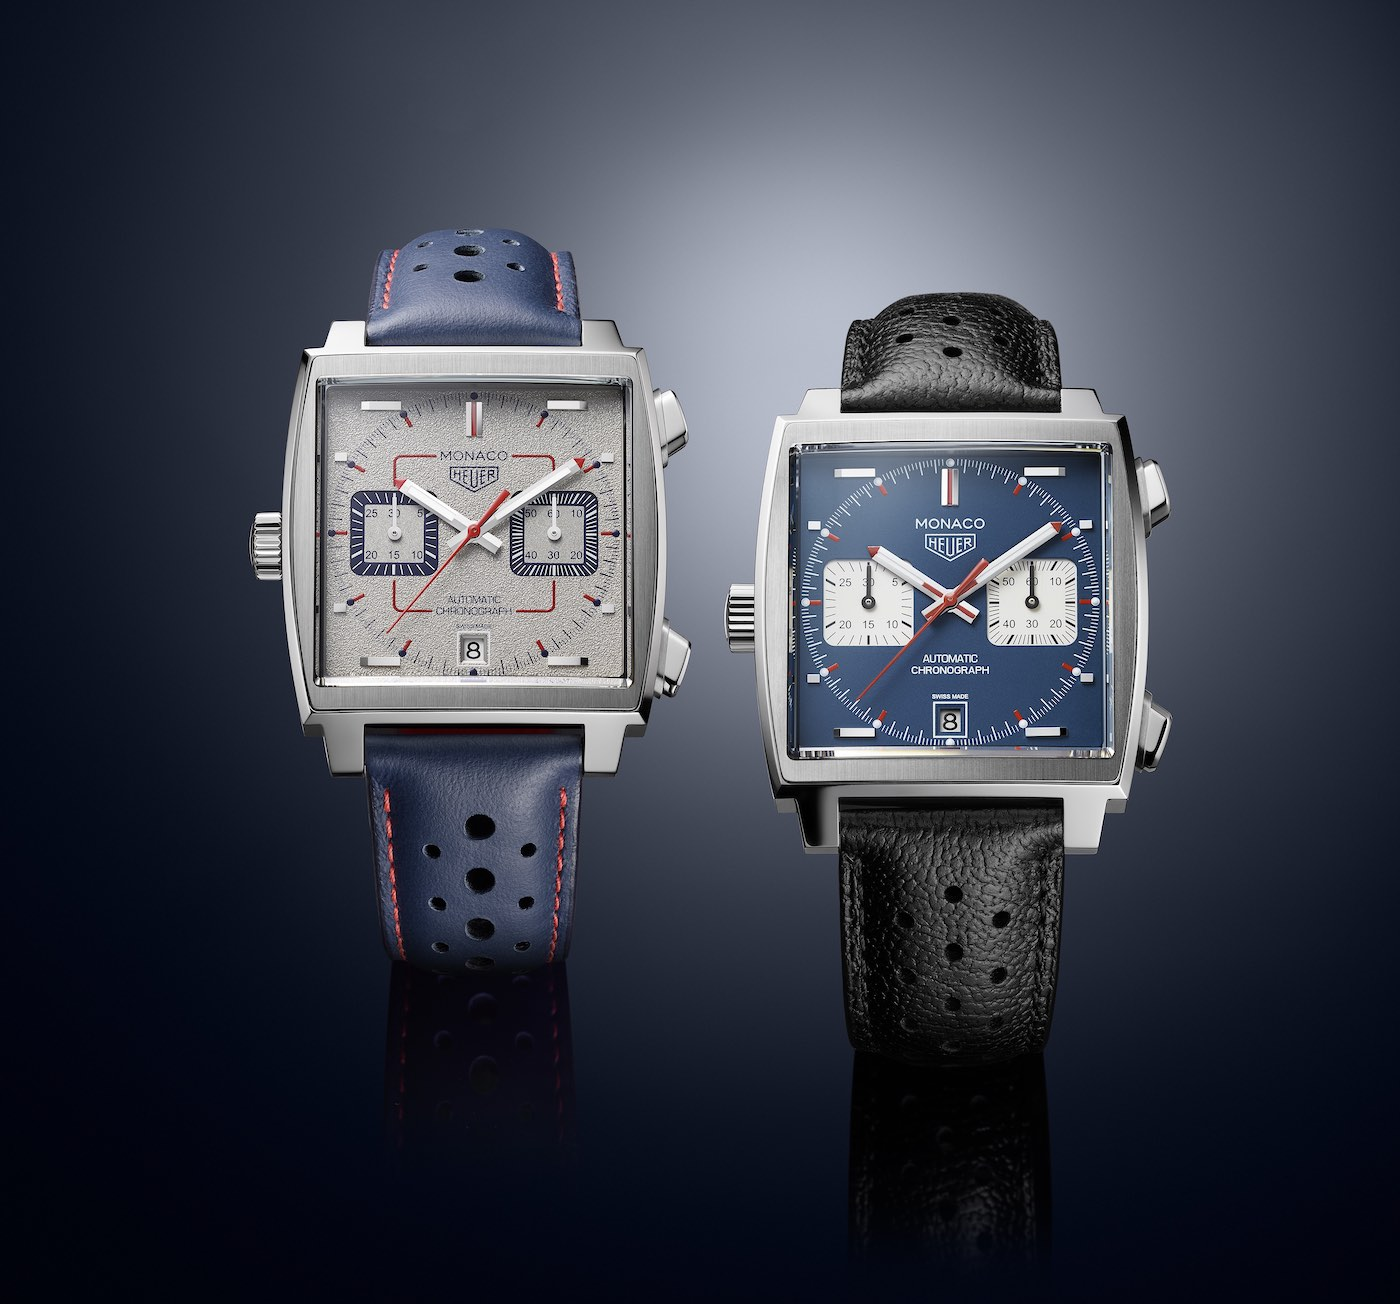 TAG Heuer Monaco Replica Watch Celebrates The Style Of The 1990s